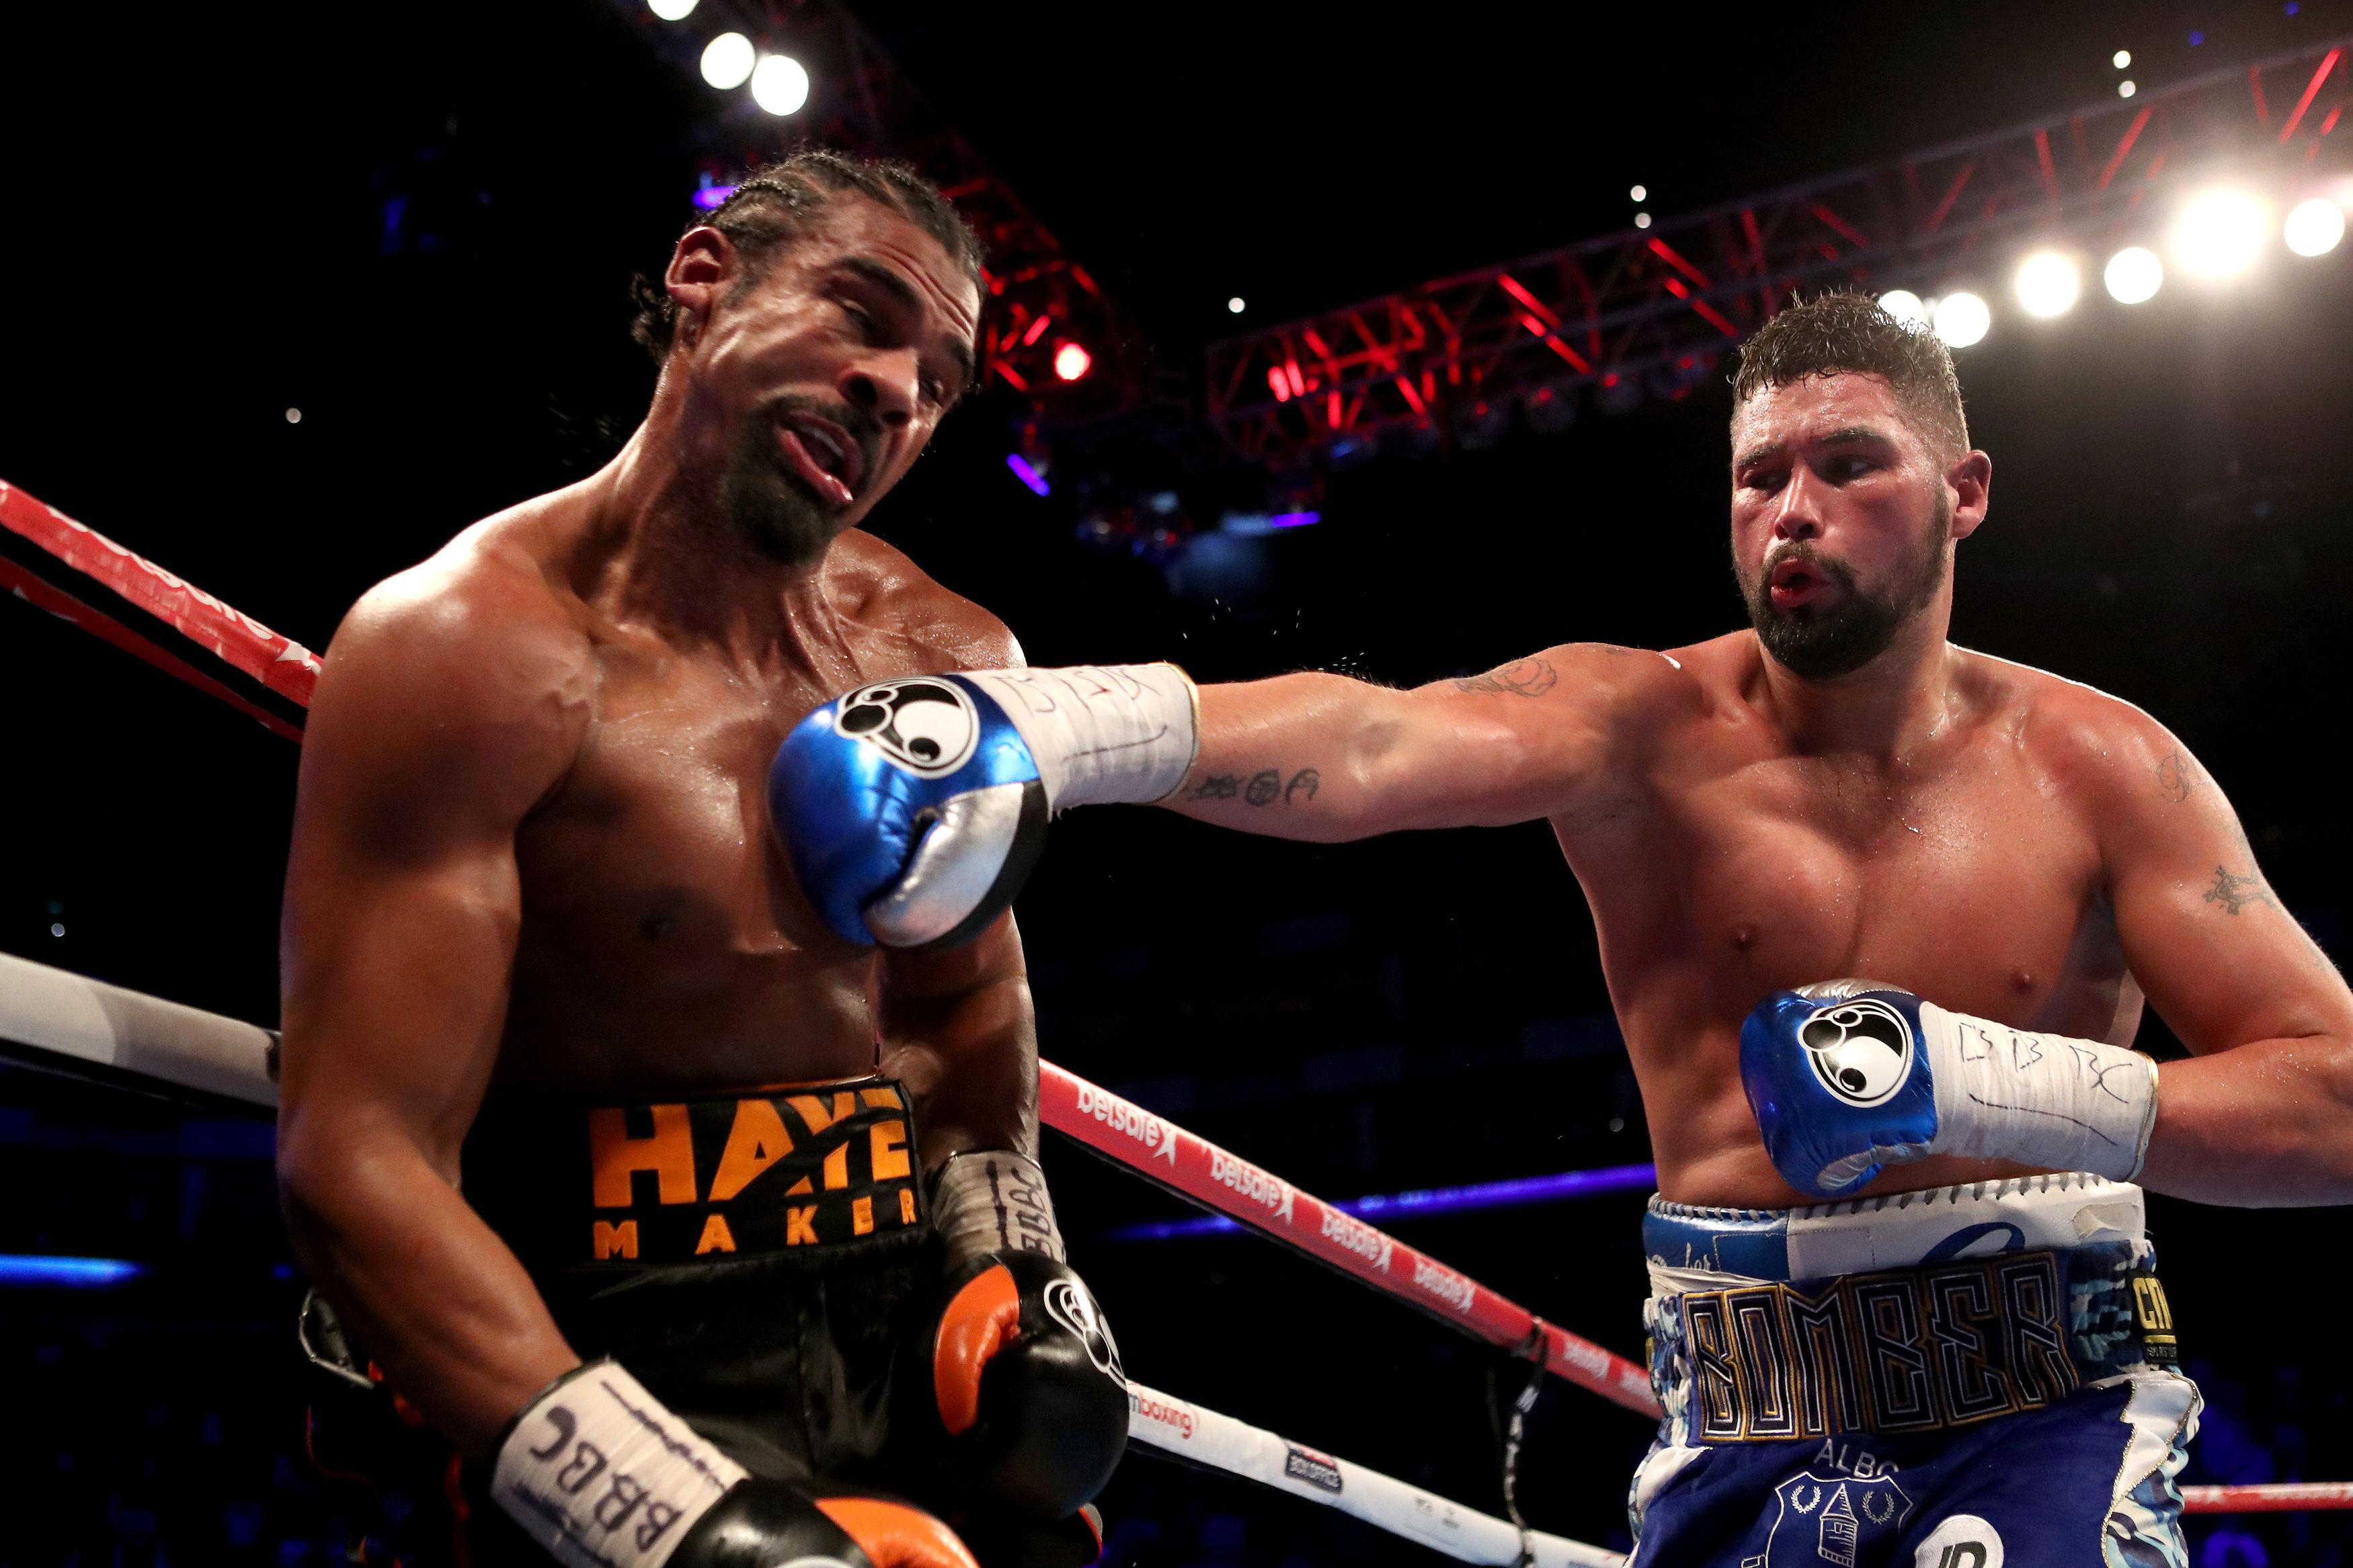 Bellew stopped Haye in the fifth round of their rematch on May 5